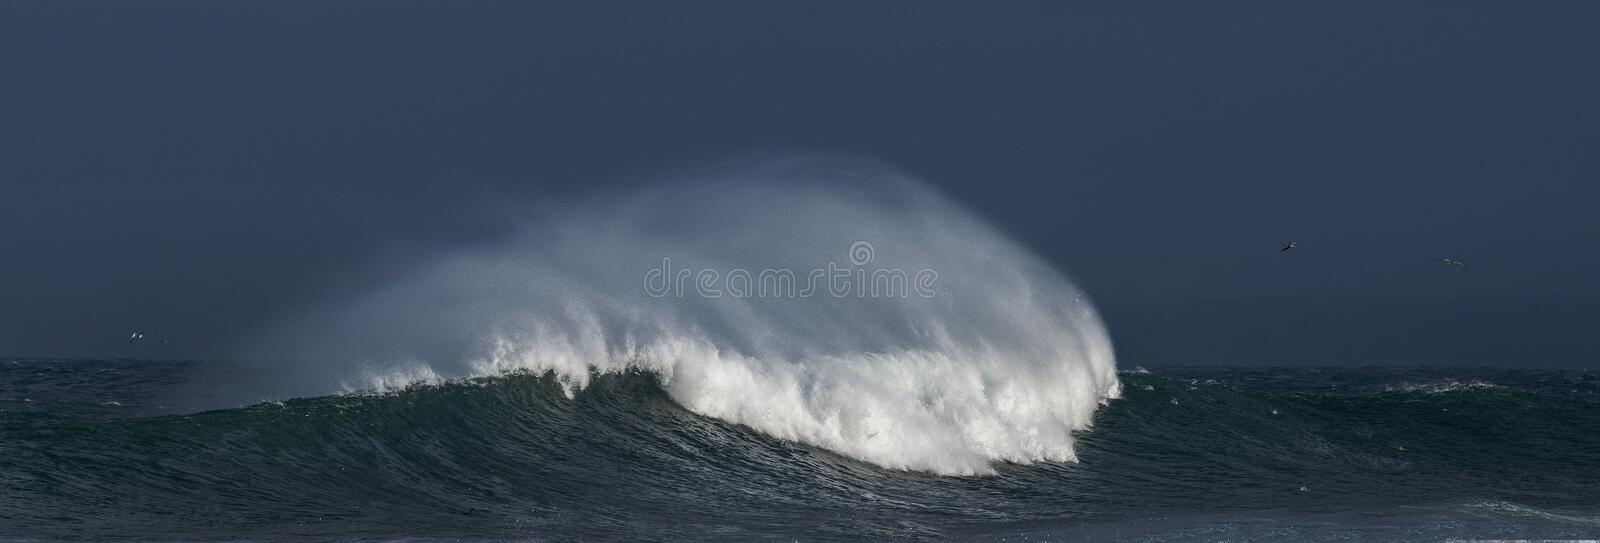 Sunset Seascape. Powerful ocean wave on the surface of the ocean. Wave breaks on a shallow bank. Stormy weather, stormy clouds sky. Background royalty free stock image